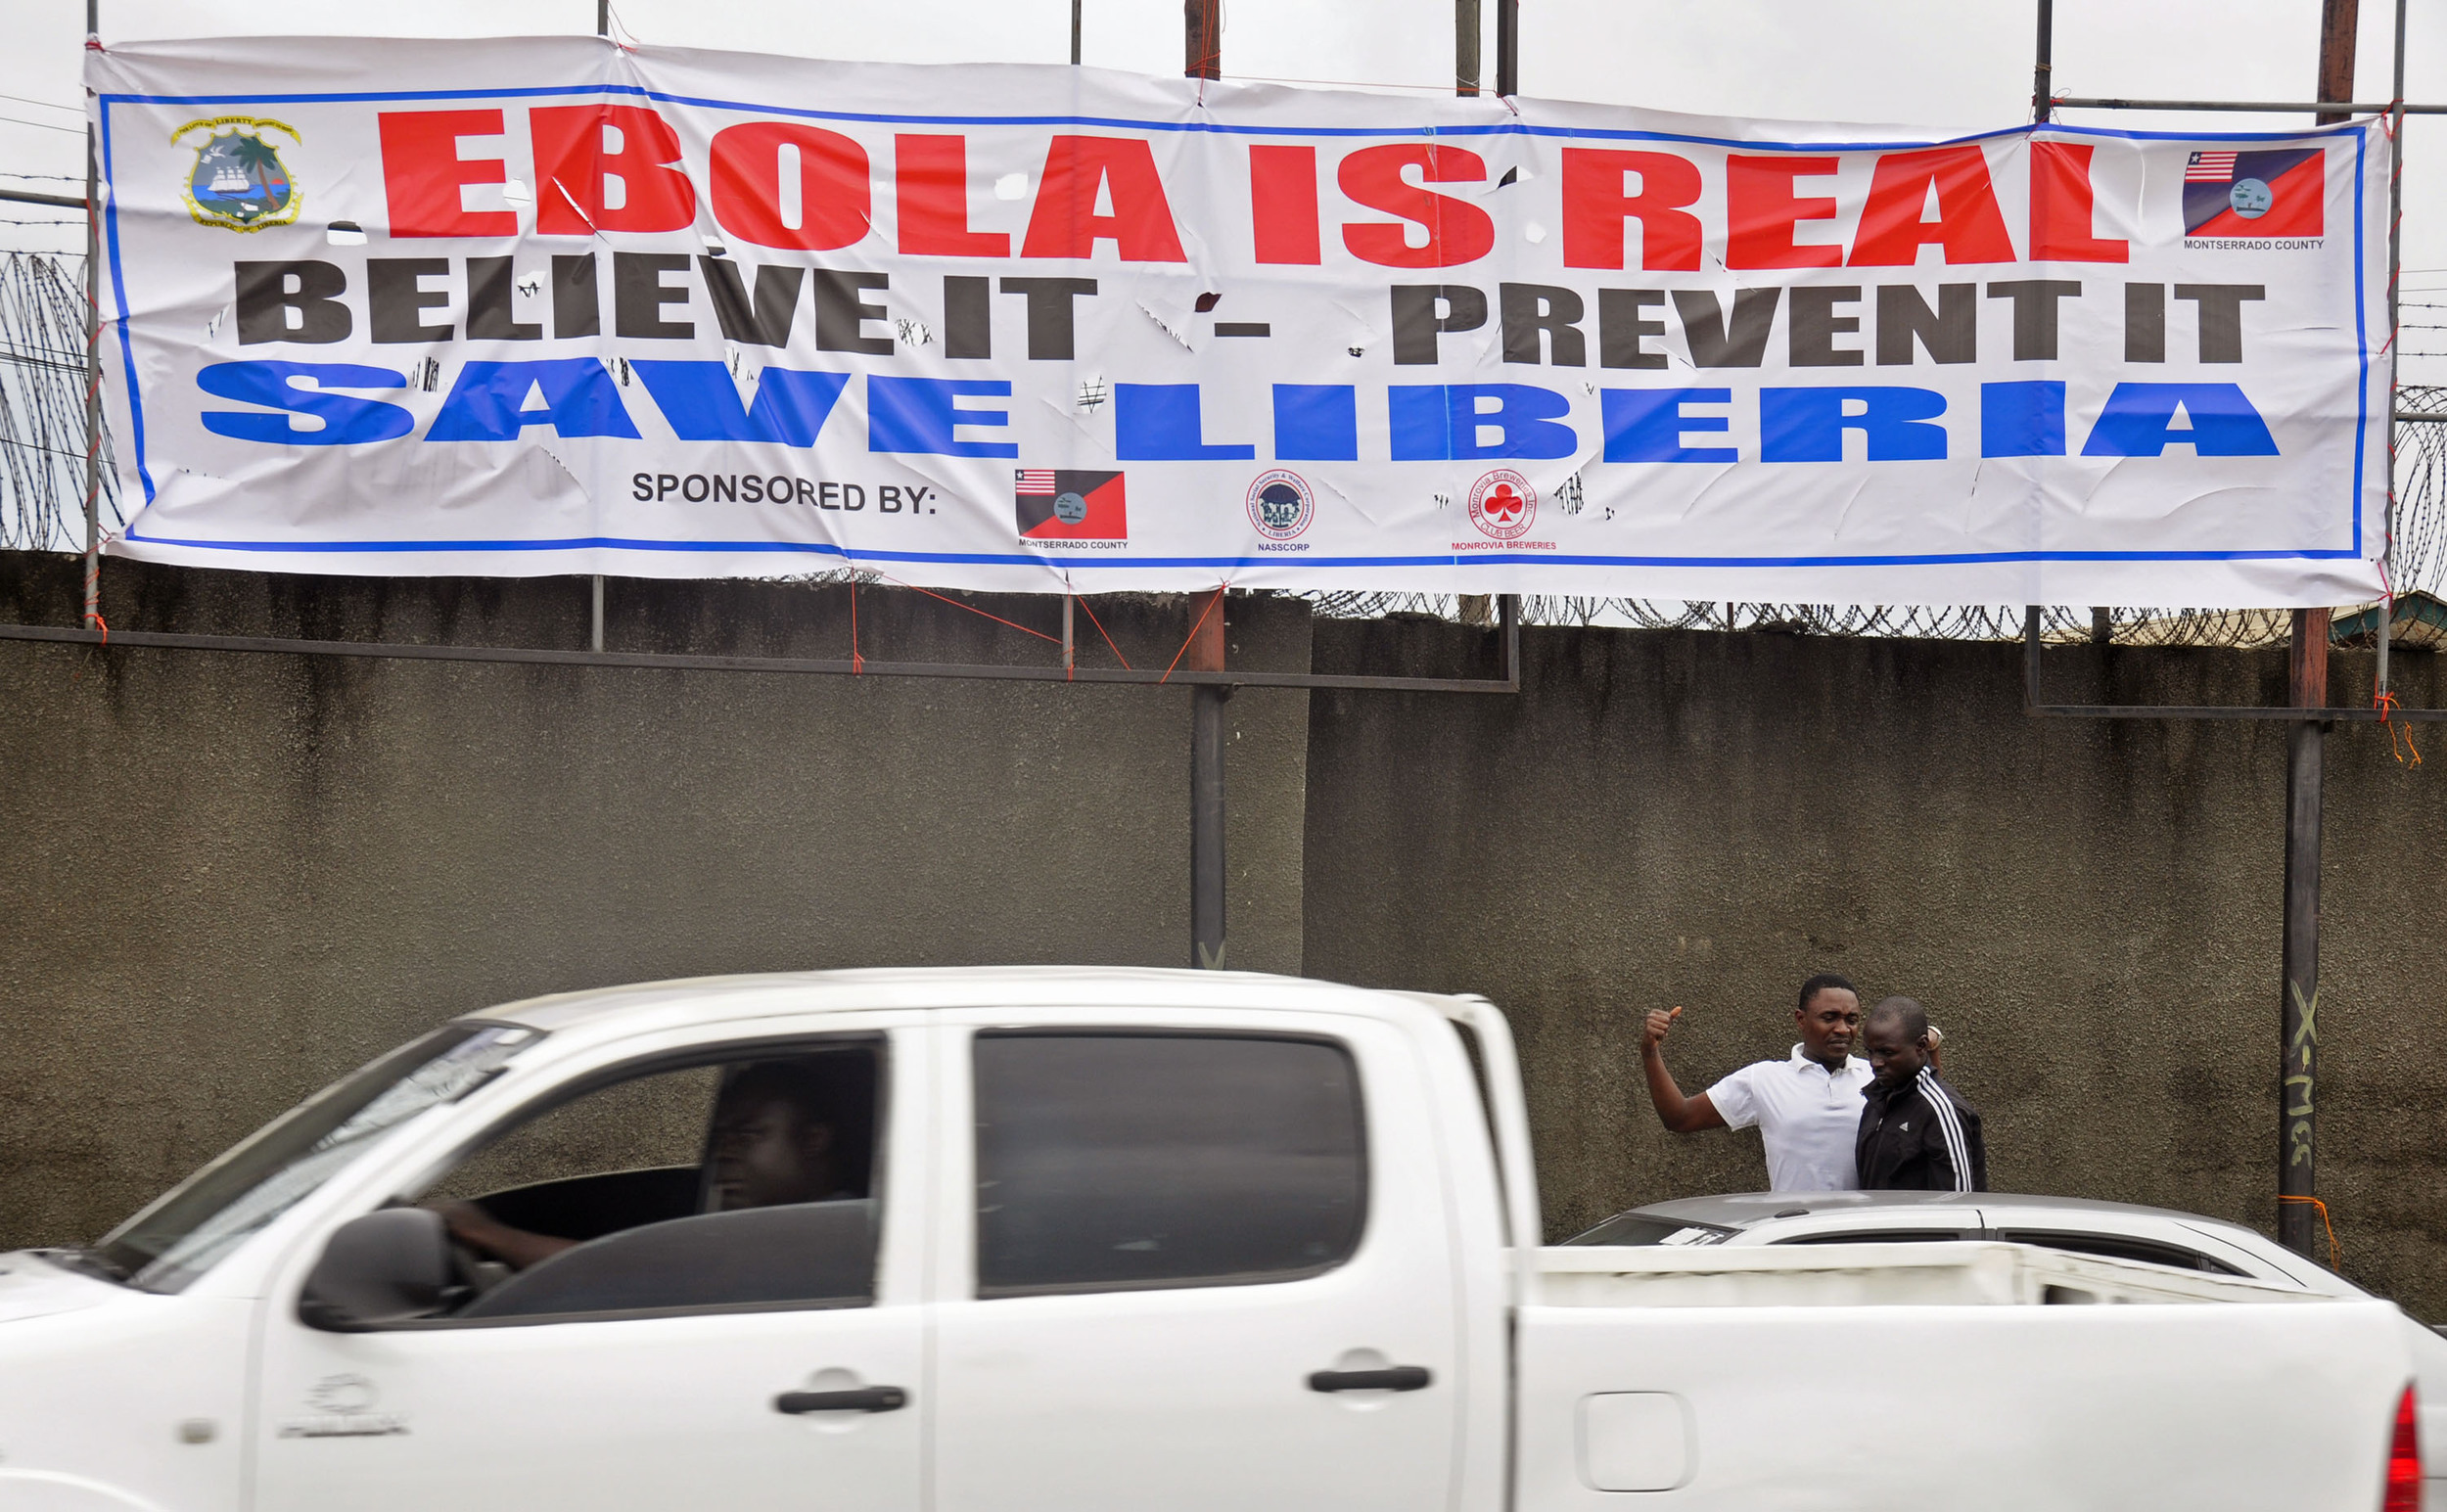 https://i1.wp.com/www.blogcdn.com/slideshows/images/slides/283/175/6/S2831756/slug/l/liberia-west-africa-ebola-1.jpg